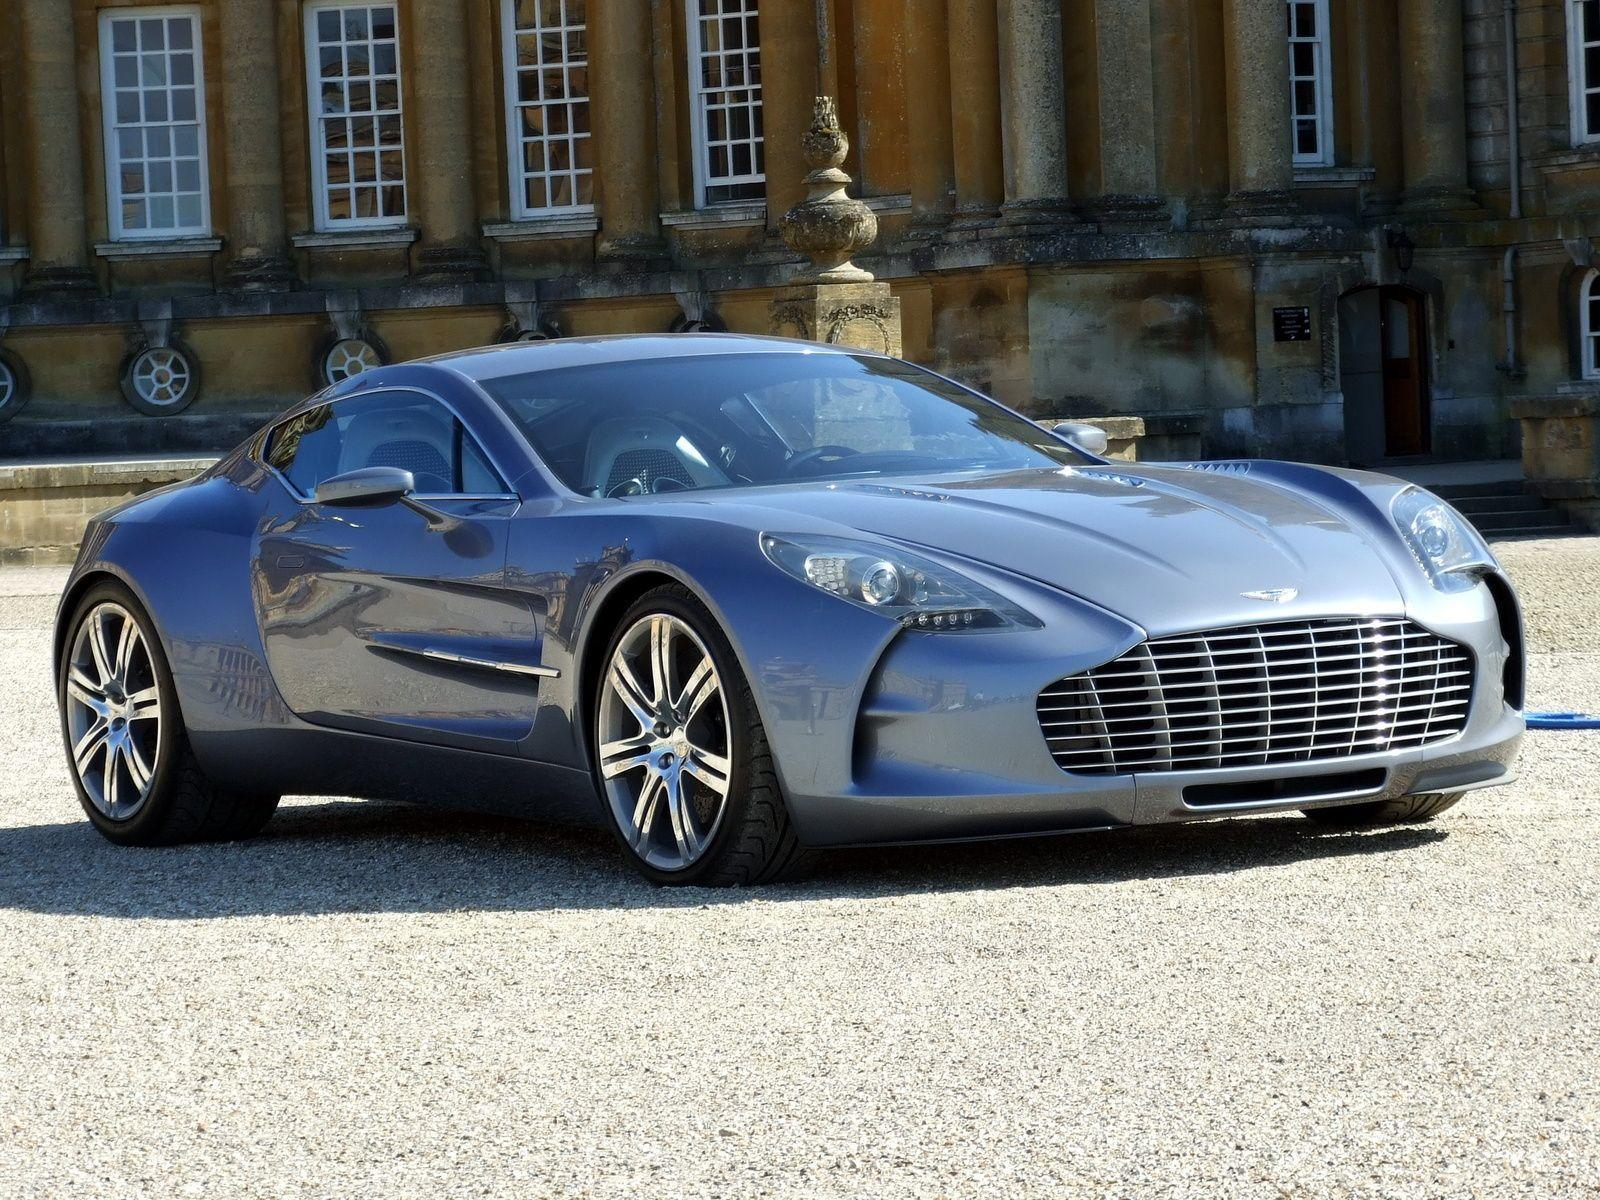 Aston Martin One 77 Wallpapers Wallpaper Cave